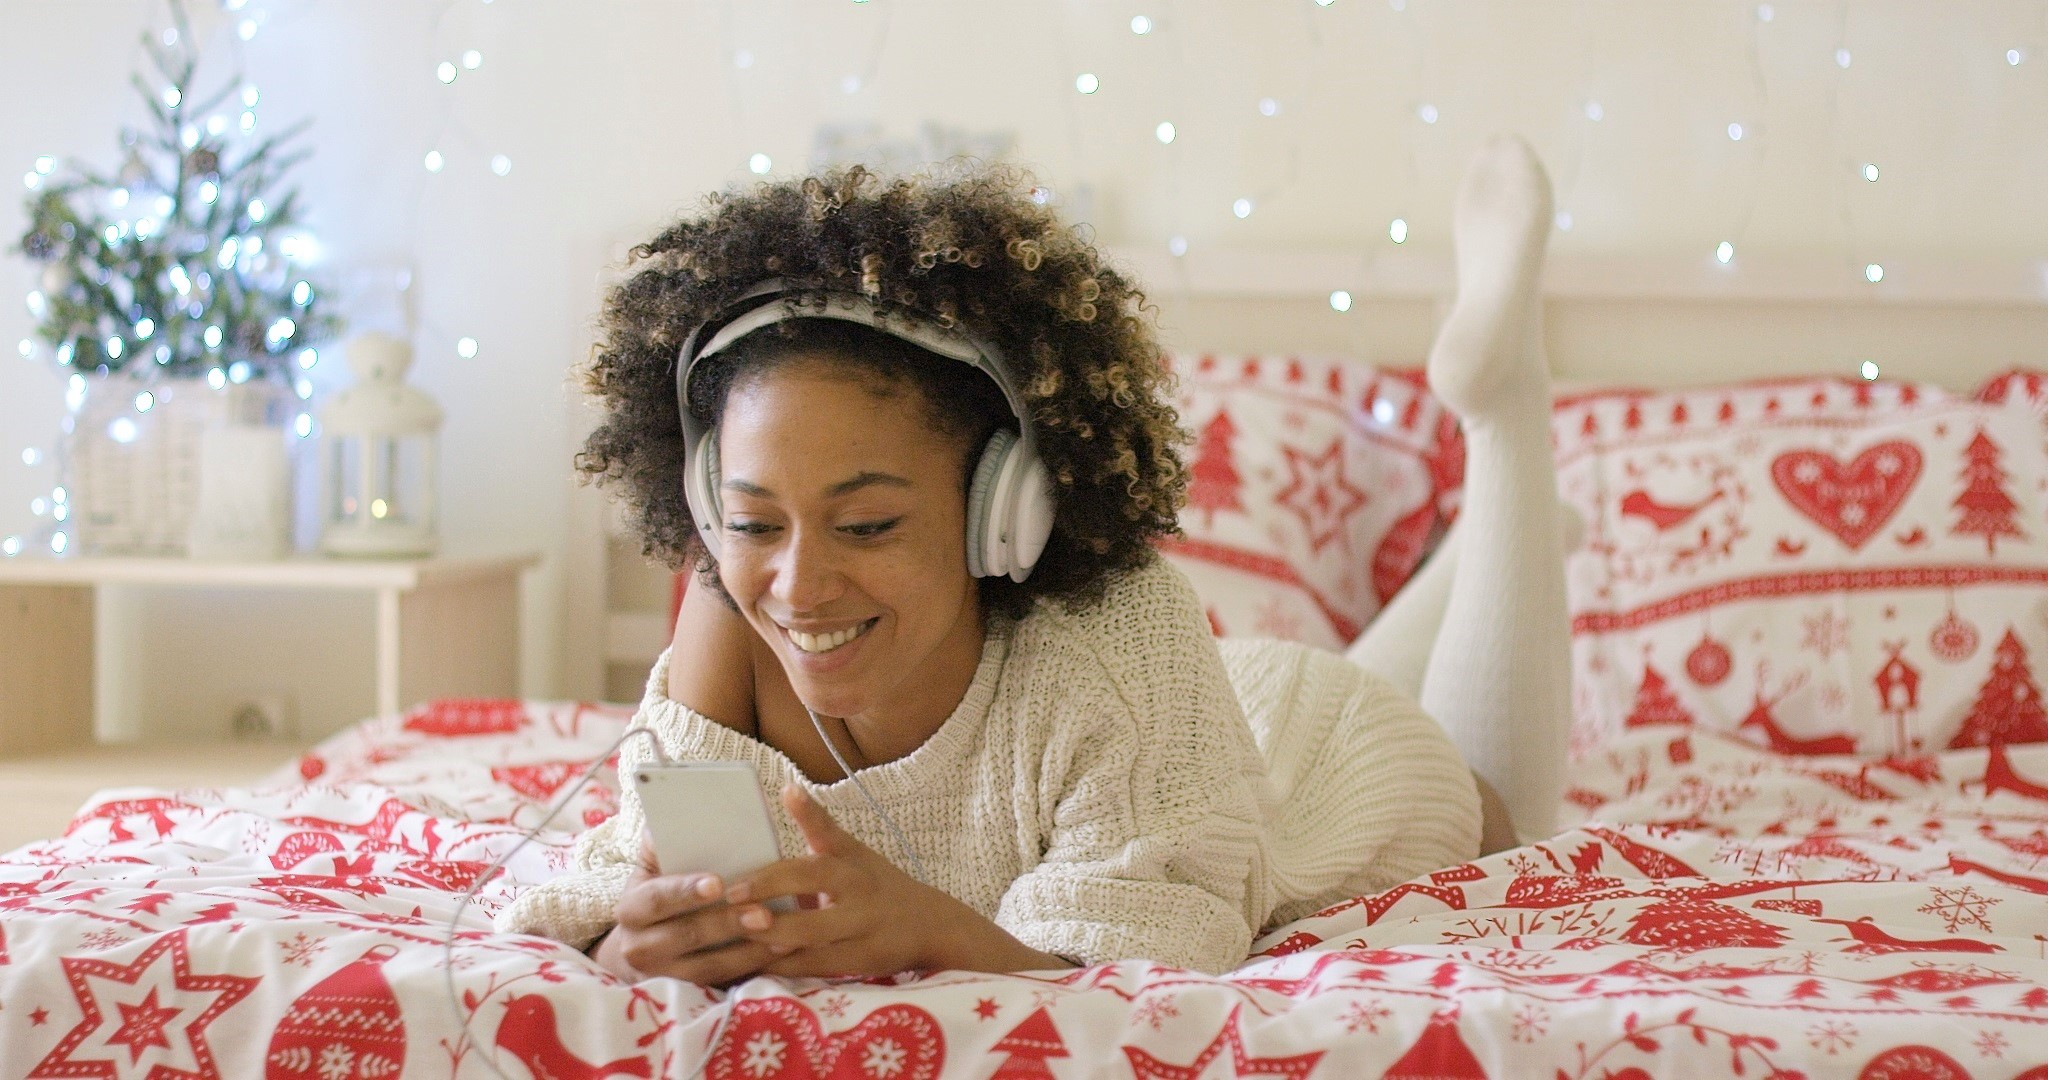 African American Girl Listening to Music on Headphones Christmas Decor